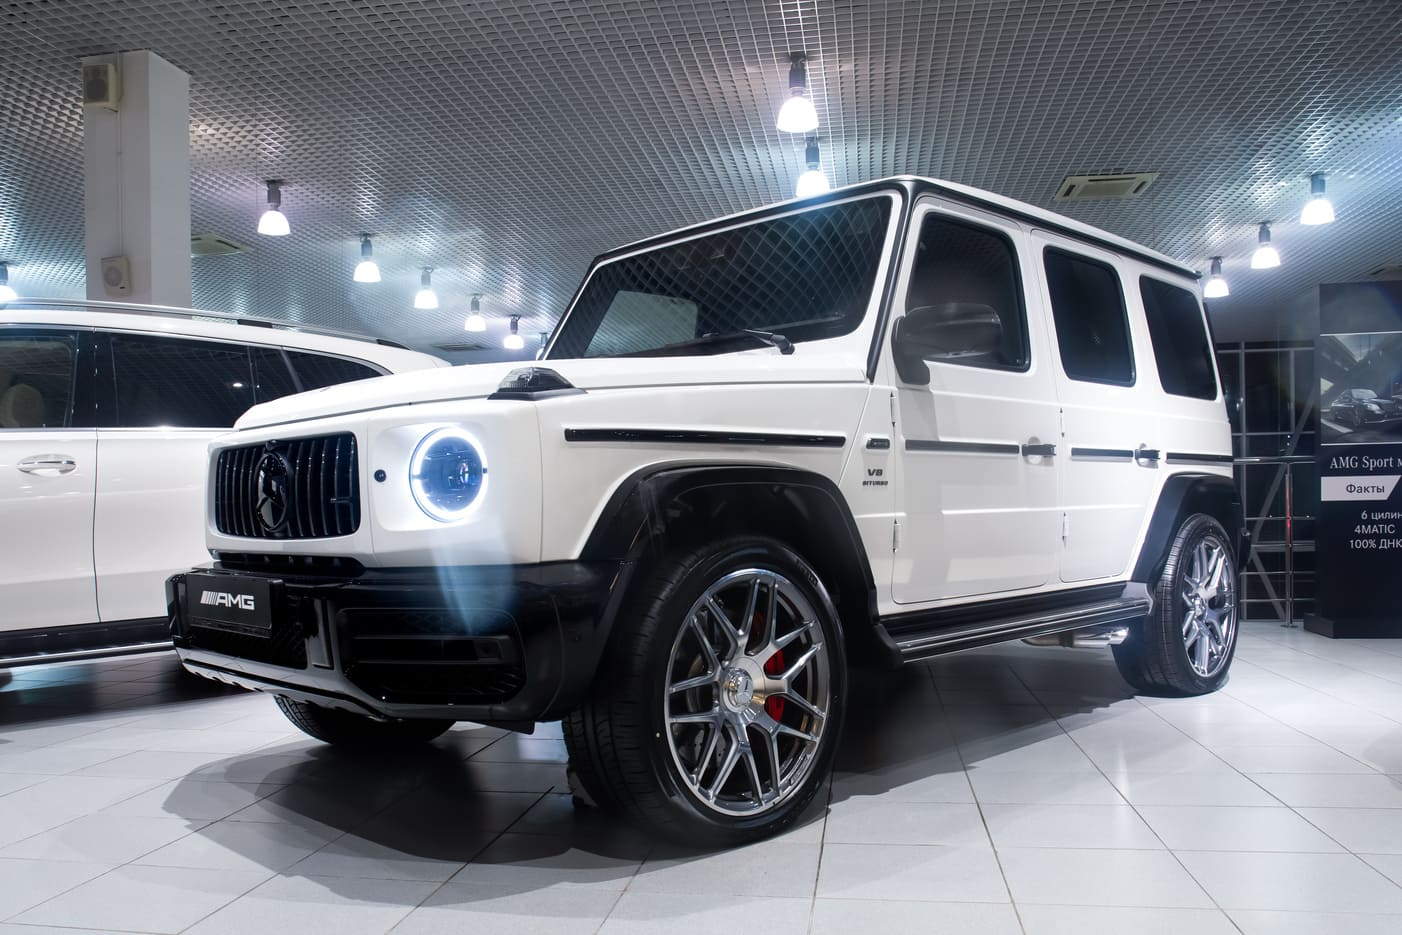 Mercedes-Benz G-Класс G 63 AMG 4MATIC